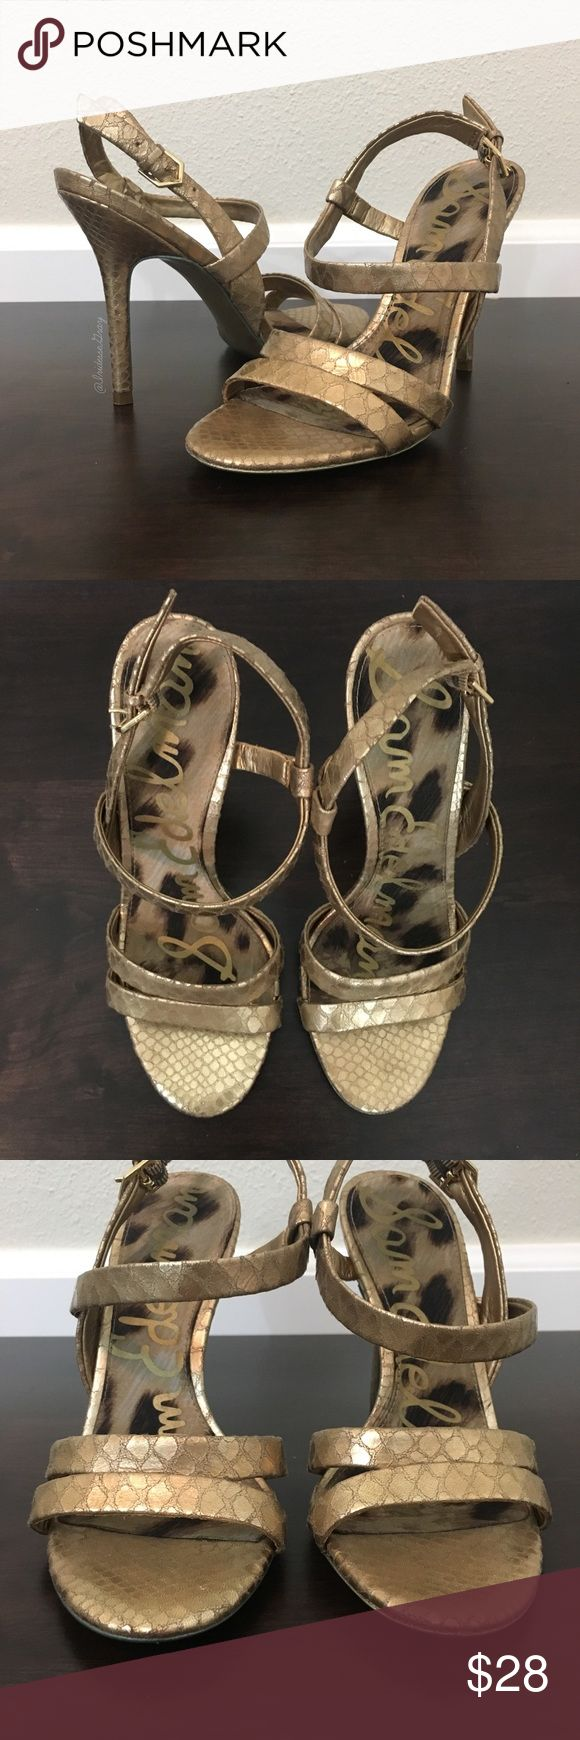 """Sam Edelman- Abbott Gold Snake Print Heels SZ 6.5 Sam Edelman- Abbott Gold Snake Print Heels SZ 6.5. Leather upper. Gold snake print. Preloved condition, still life left in them. Please see photos for detailed signs of wear. Adjustable strap at the ankle. Heel height is about 4"""". Sam Edelman Shoes Heels"""